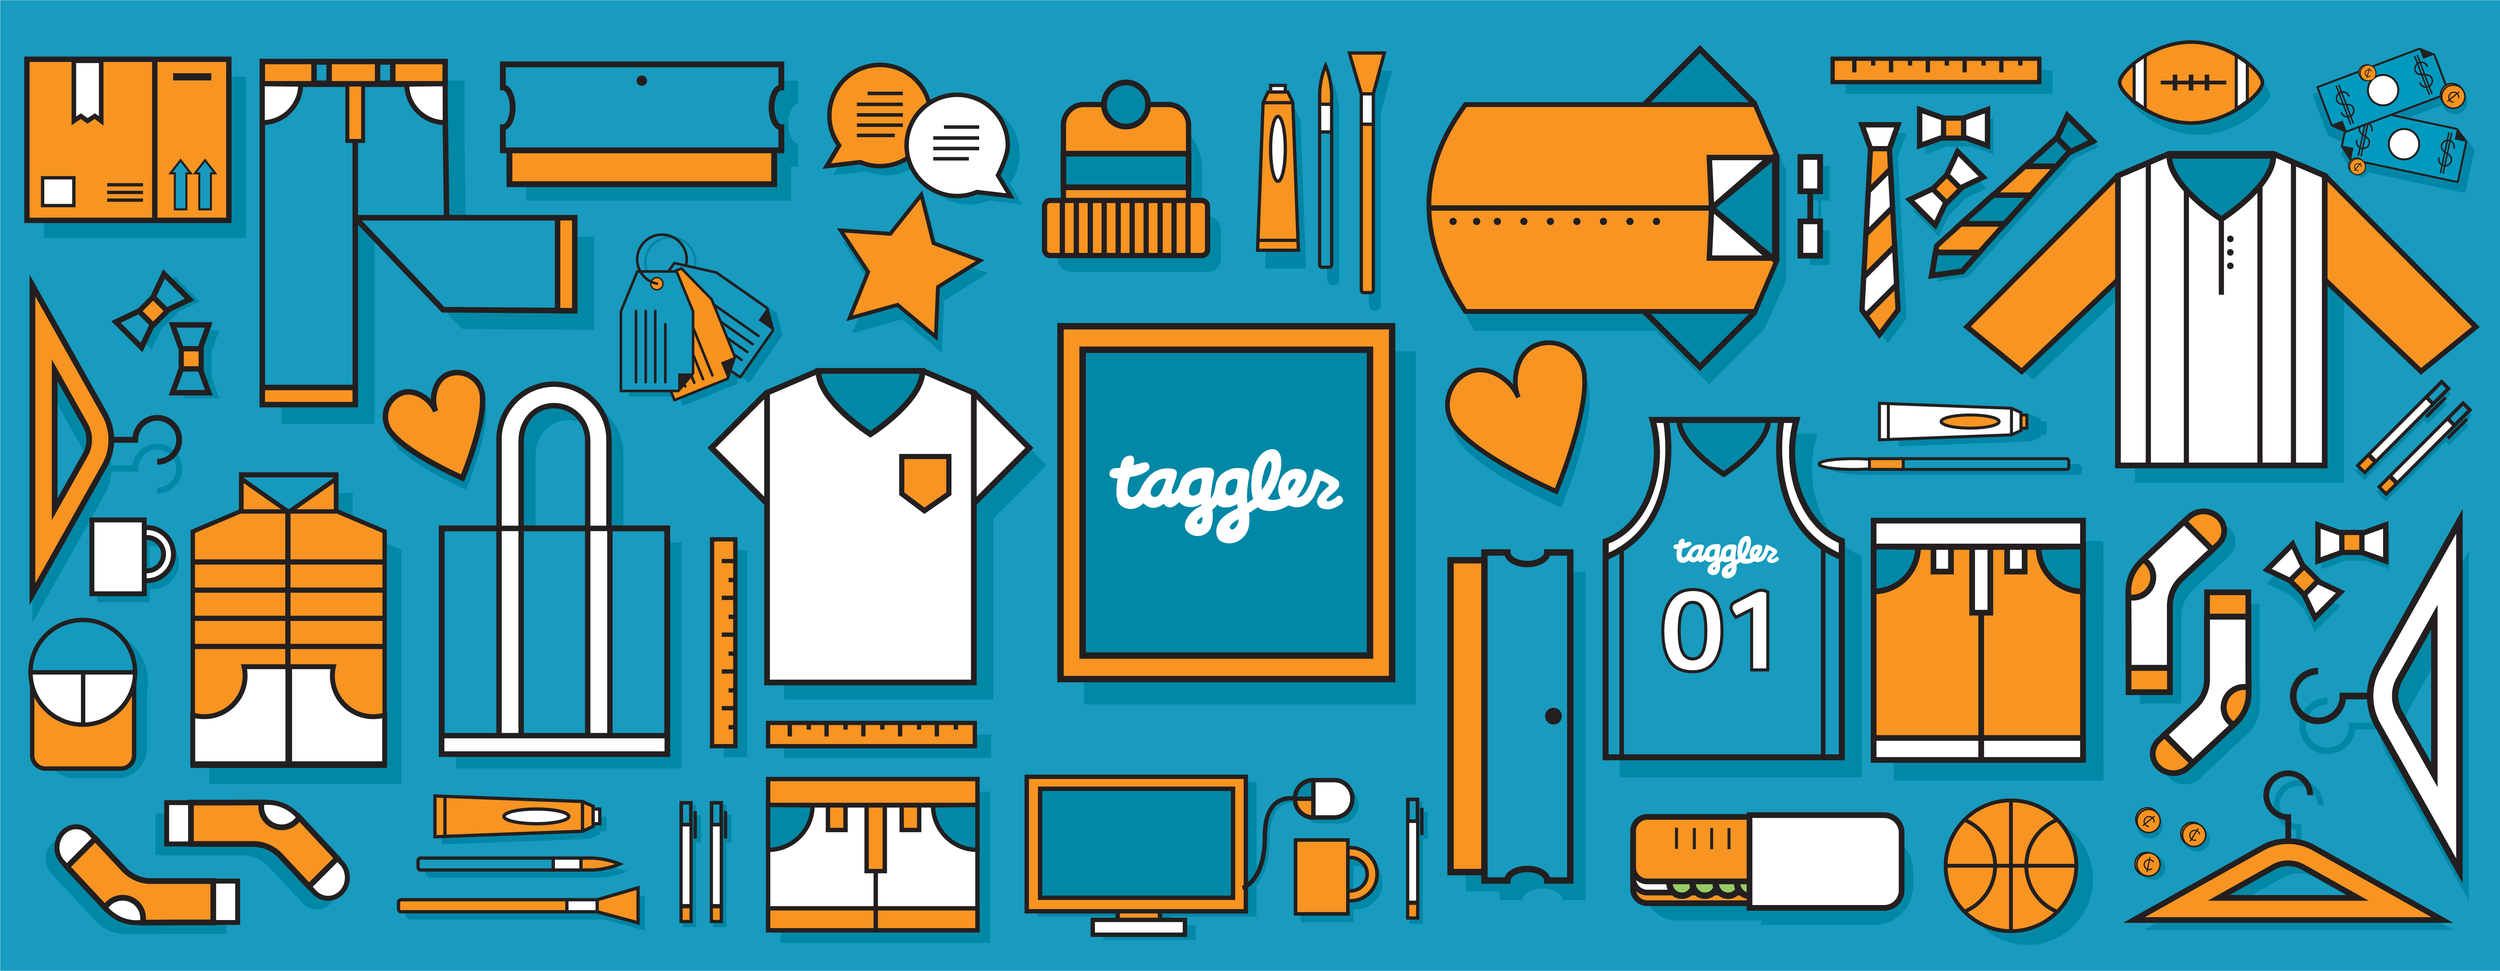 Taggler: Illustrations and Icons